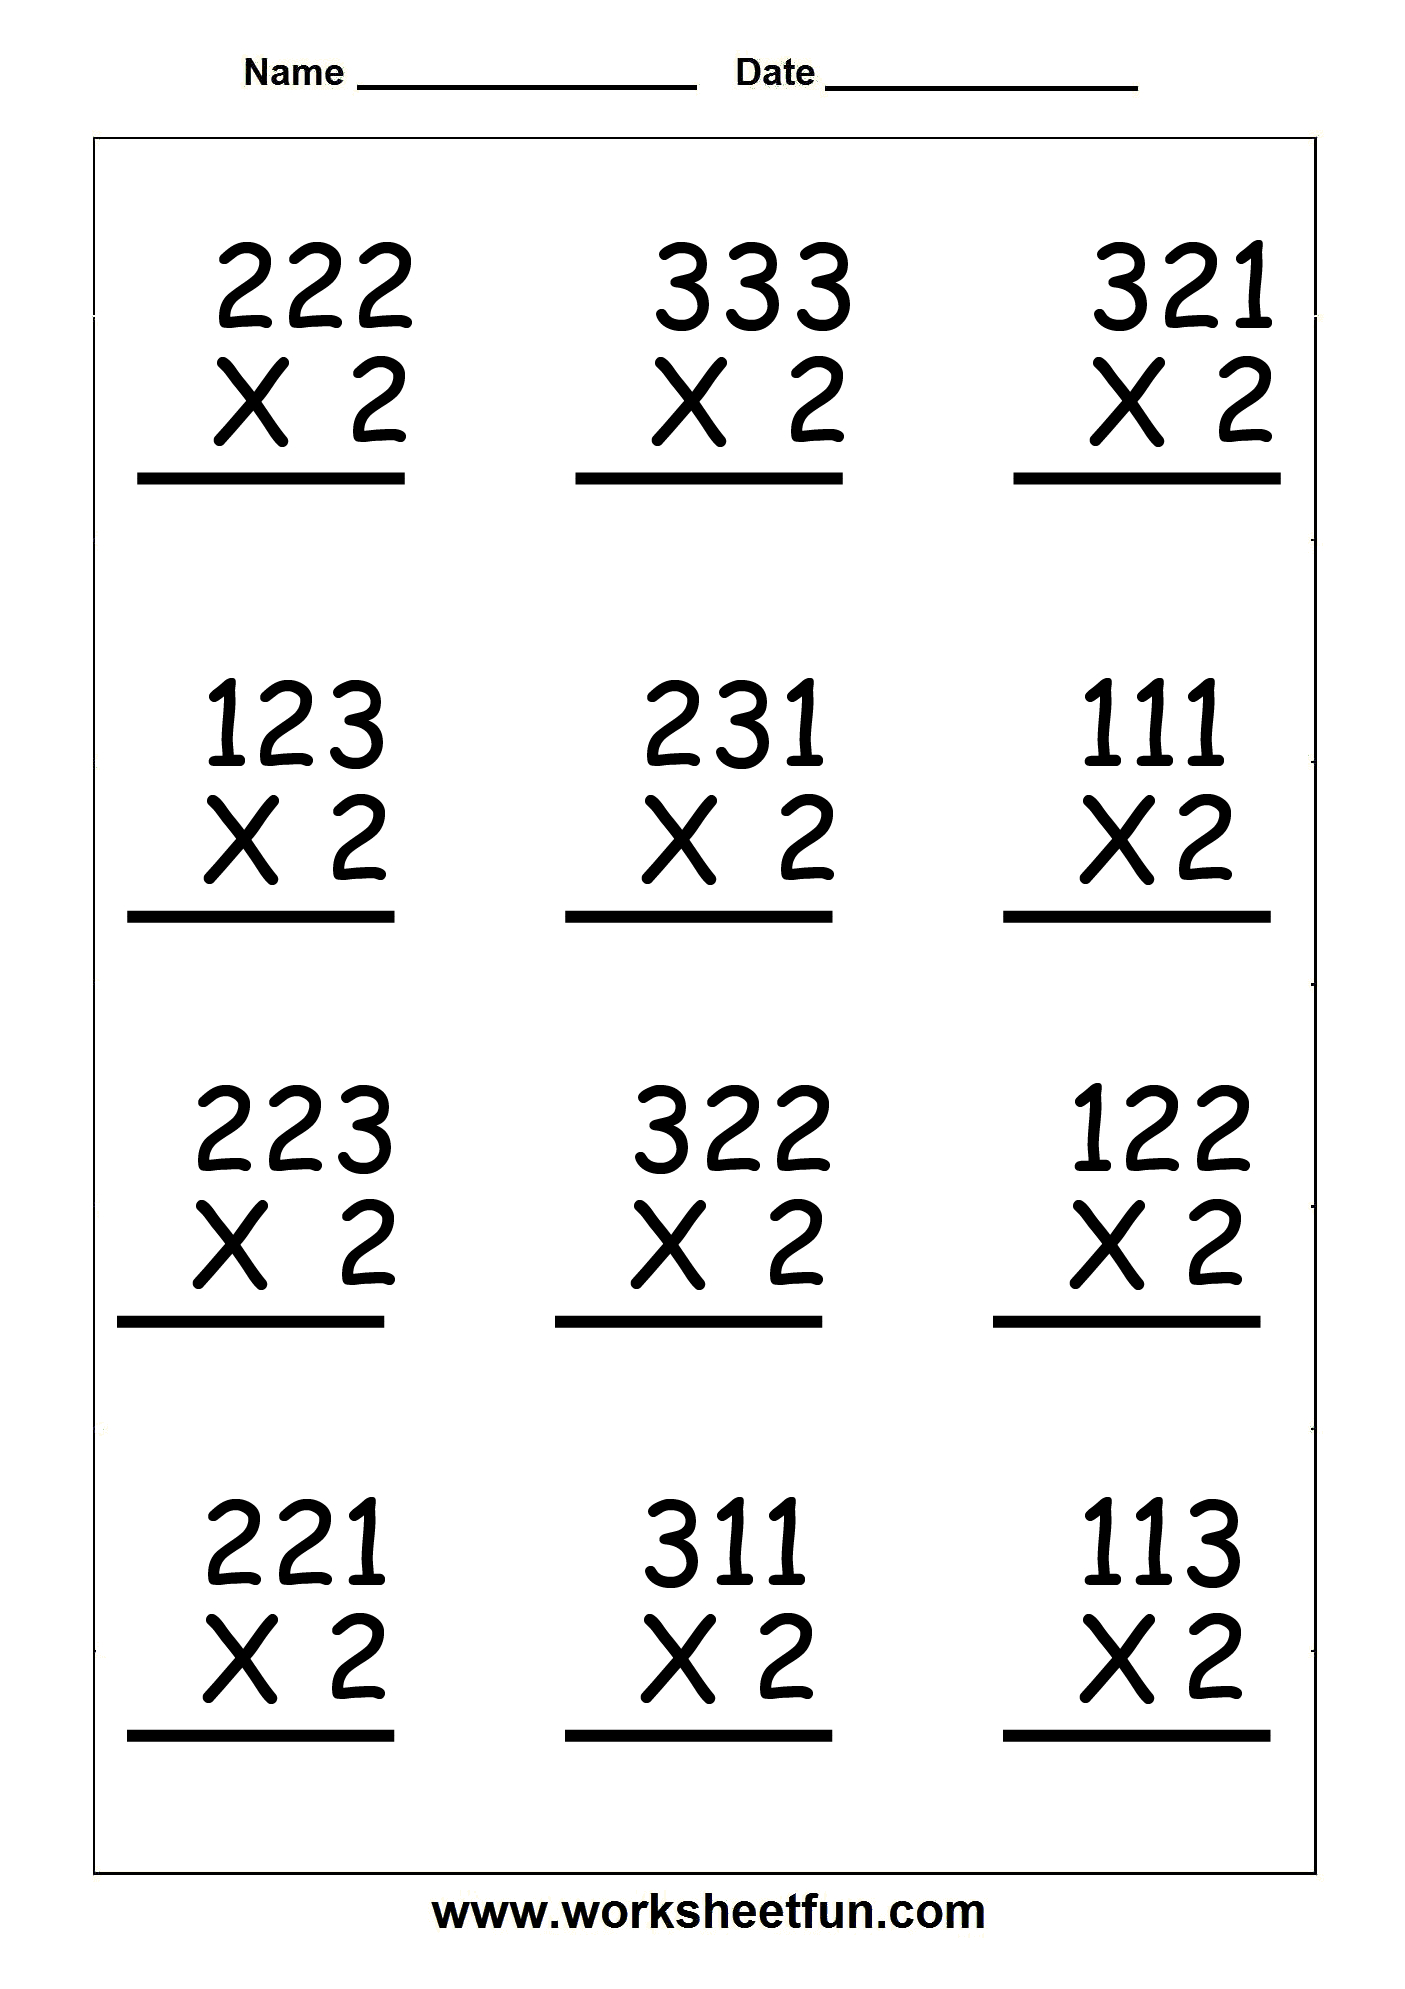 Copy Of Single Digit Multiplication Worksheets - Lessons - Tes Teach | 3 Digit Multiplication Worksheets Printable